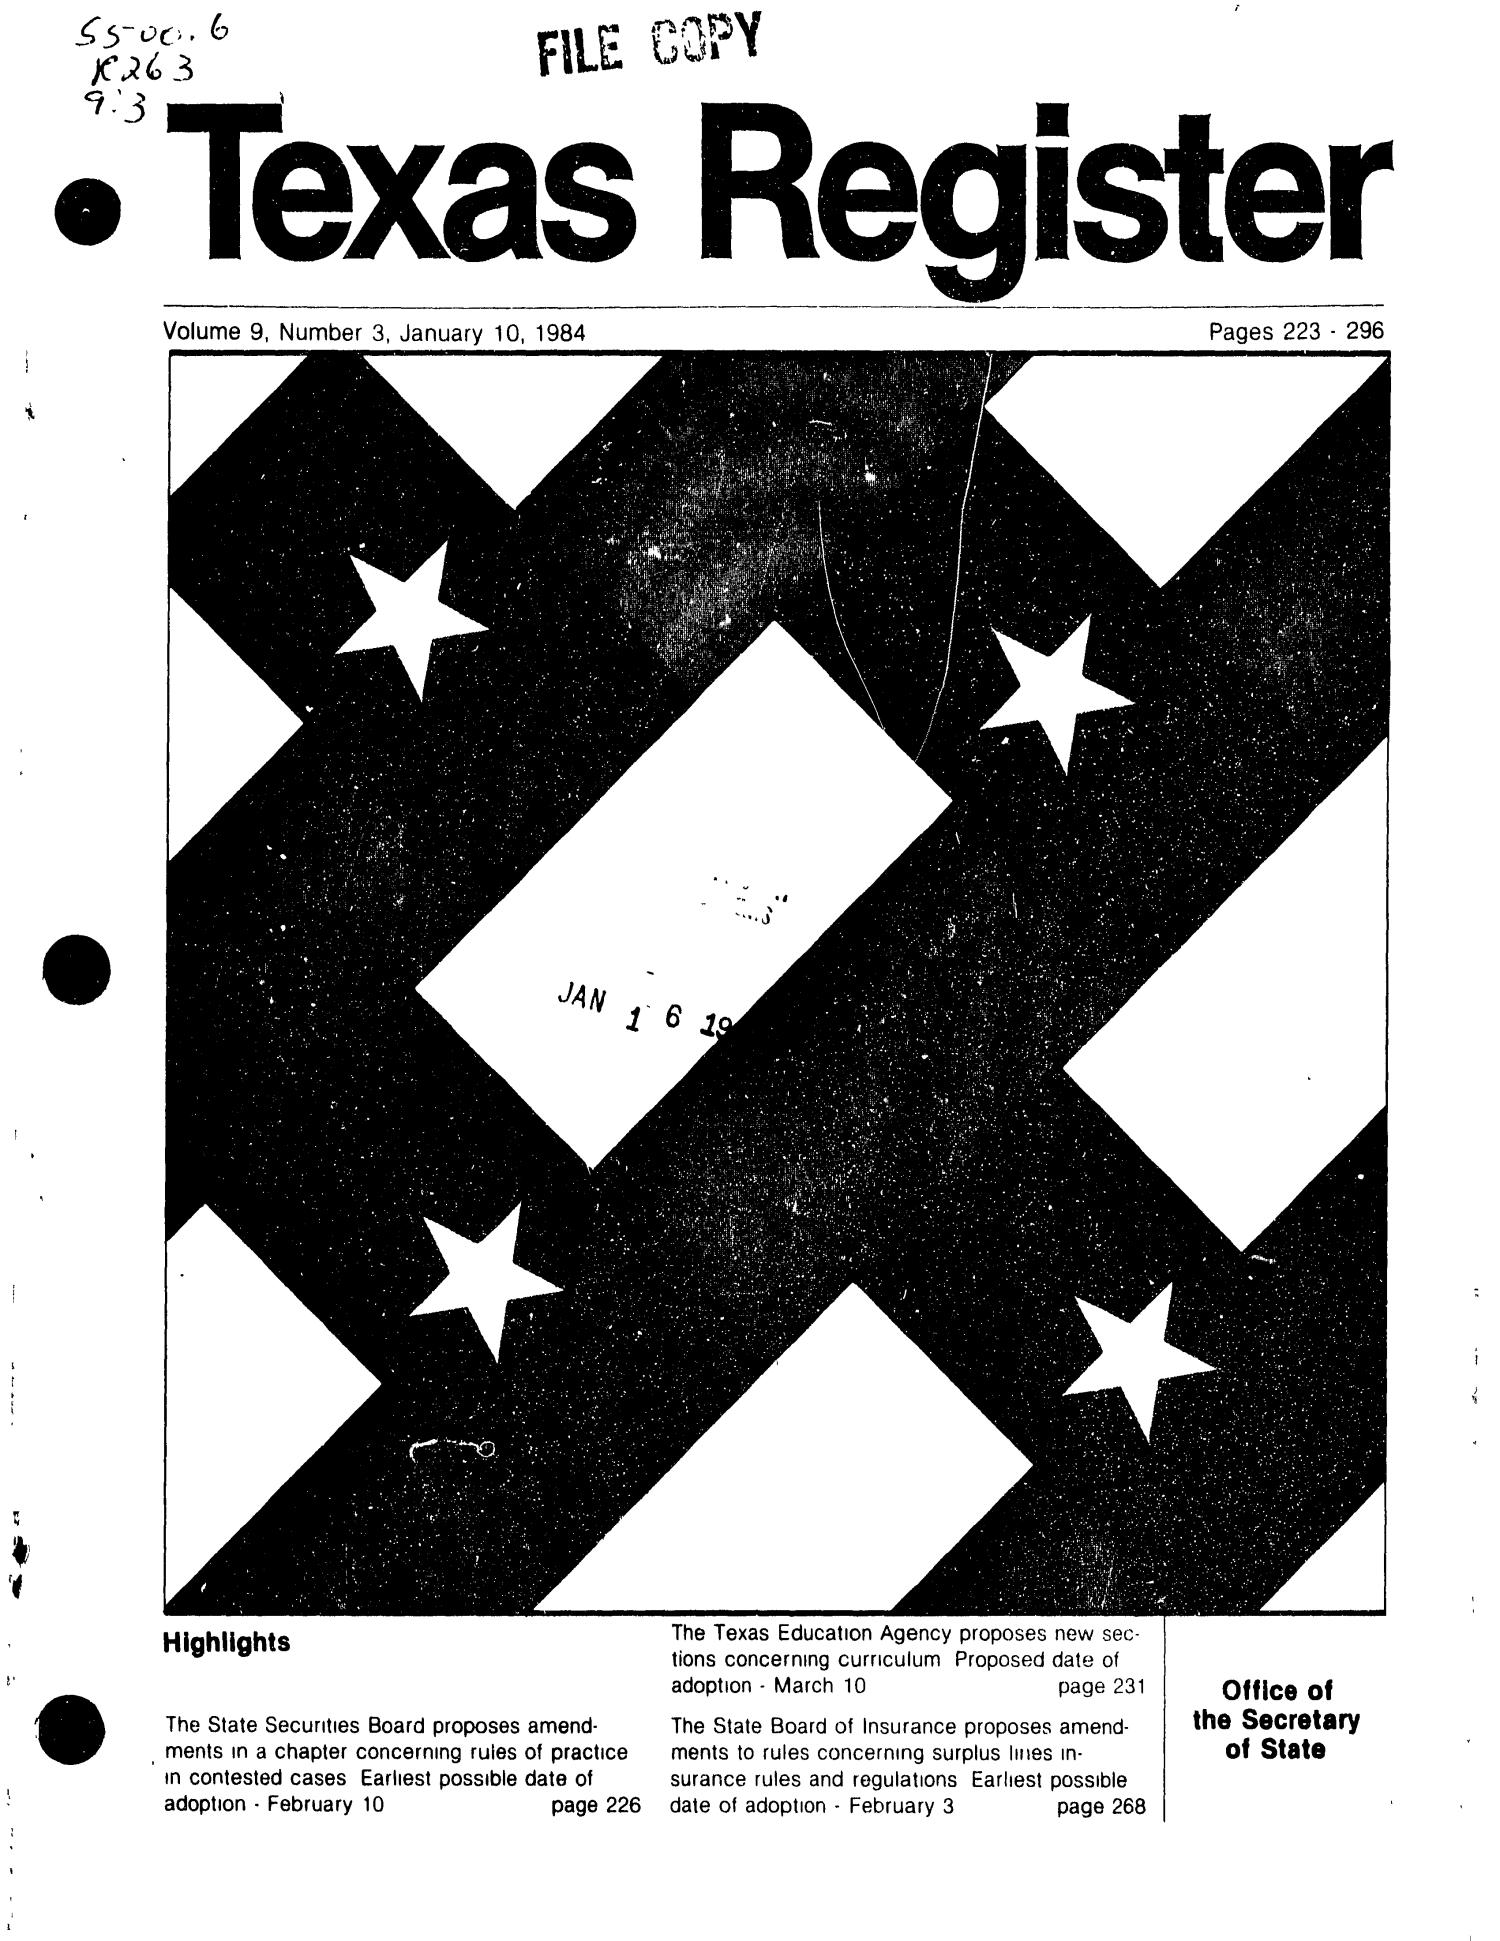 Texas Register, Volume 9, Number 3, Pages 223-296, January 10, 1984                                                                                                      Title Page